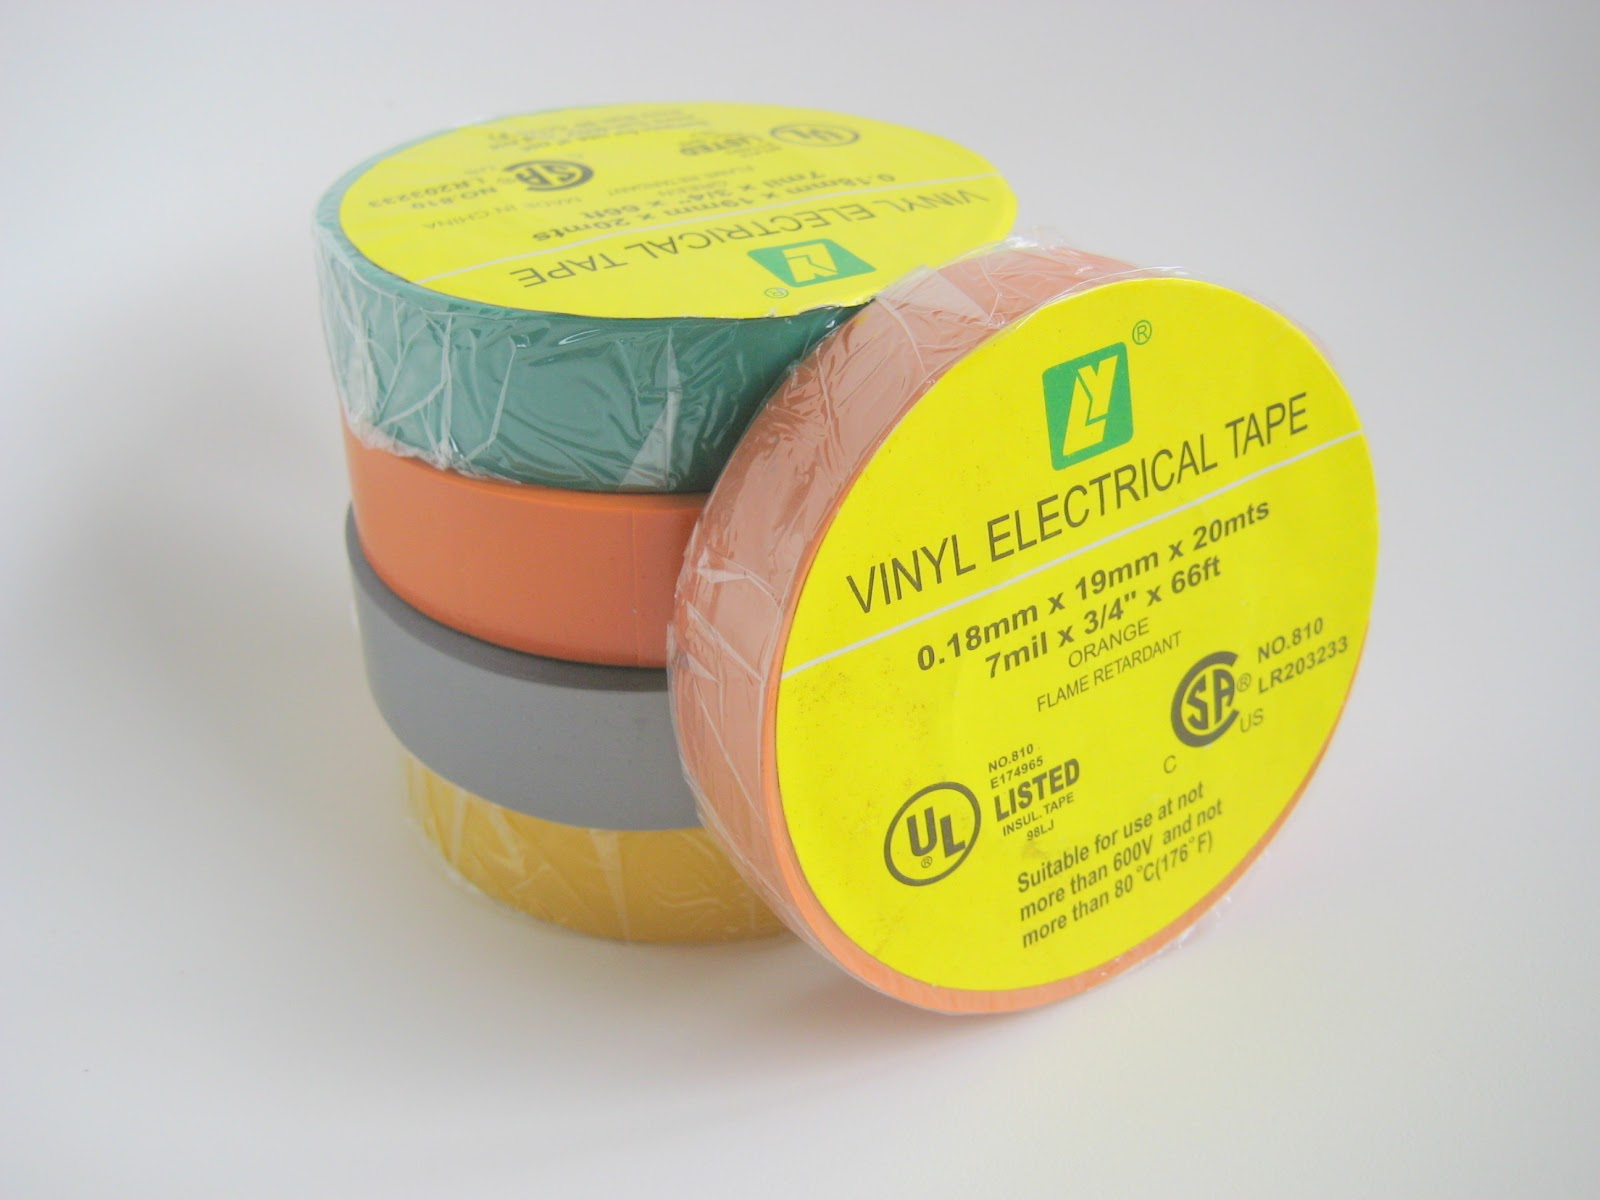 Rental trick 1 electrical tape craft rental trick 1 electrical tape amipublicfo Choice Image